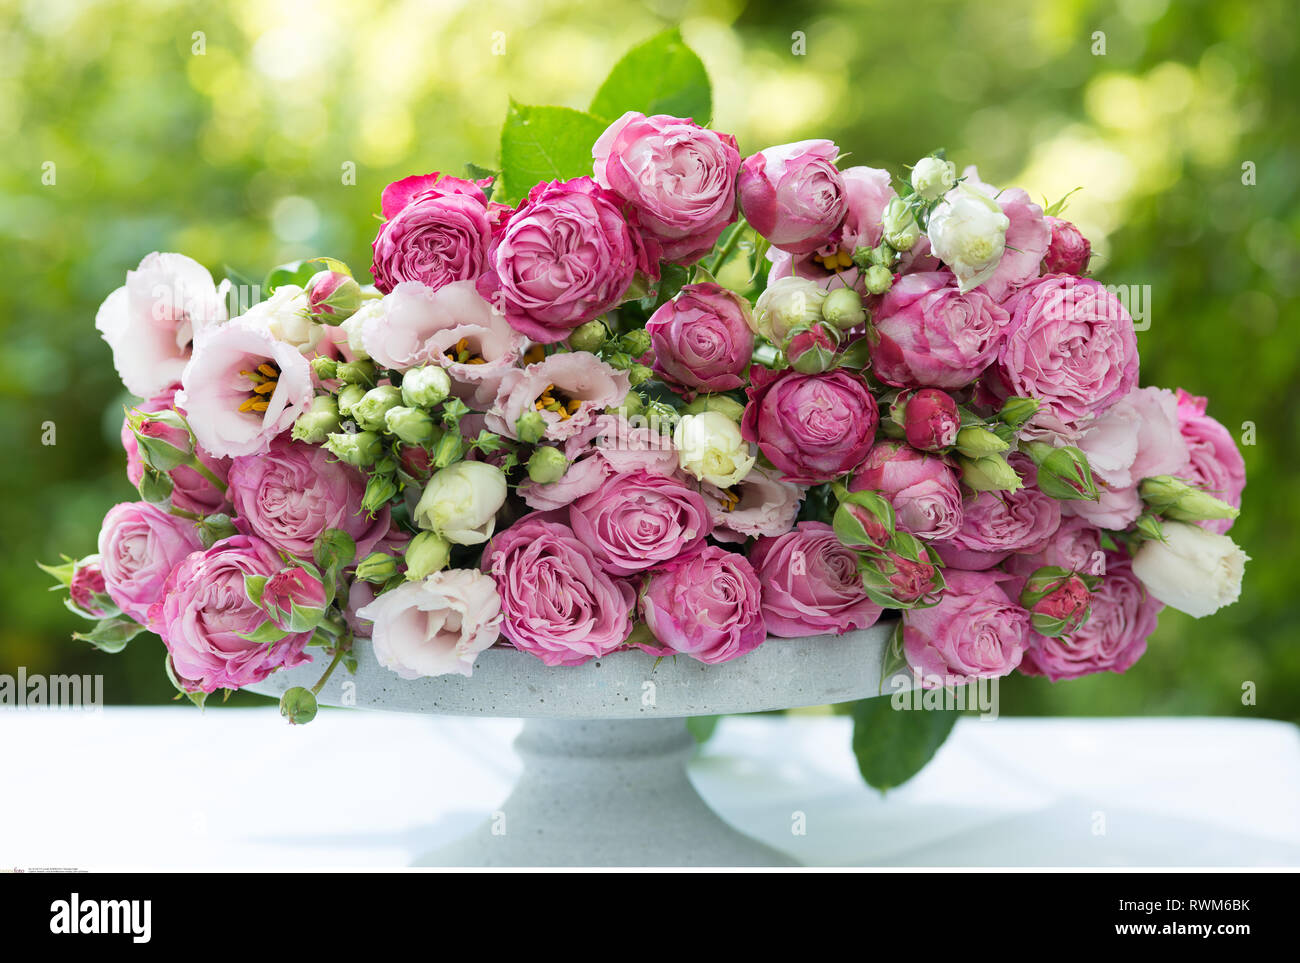 botany, pink cut flowers, Caution! For Greetingcard-Use / Postcard-Use In German Speaking Countries Certain Restrictions May Apply - Stock Image